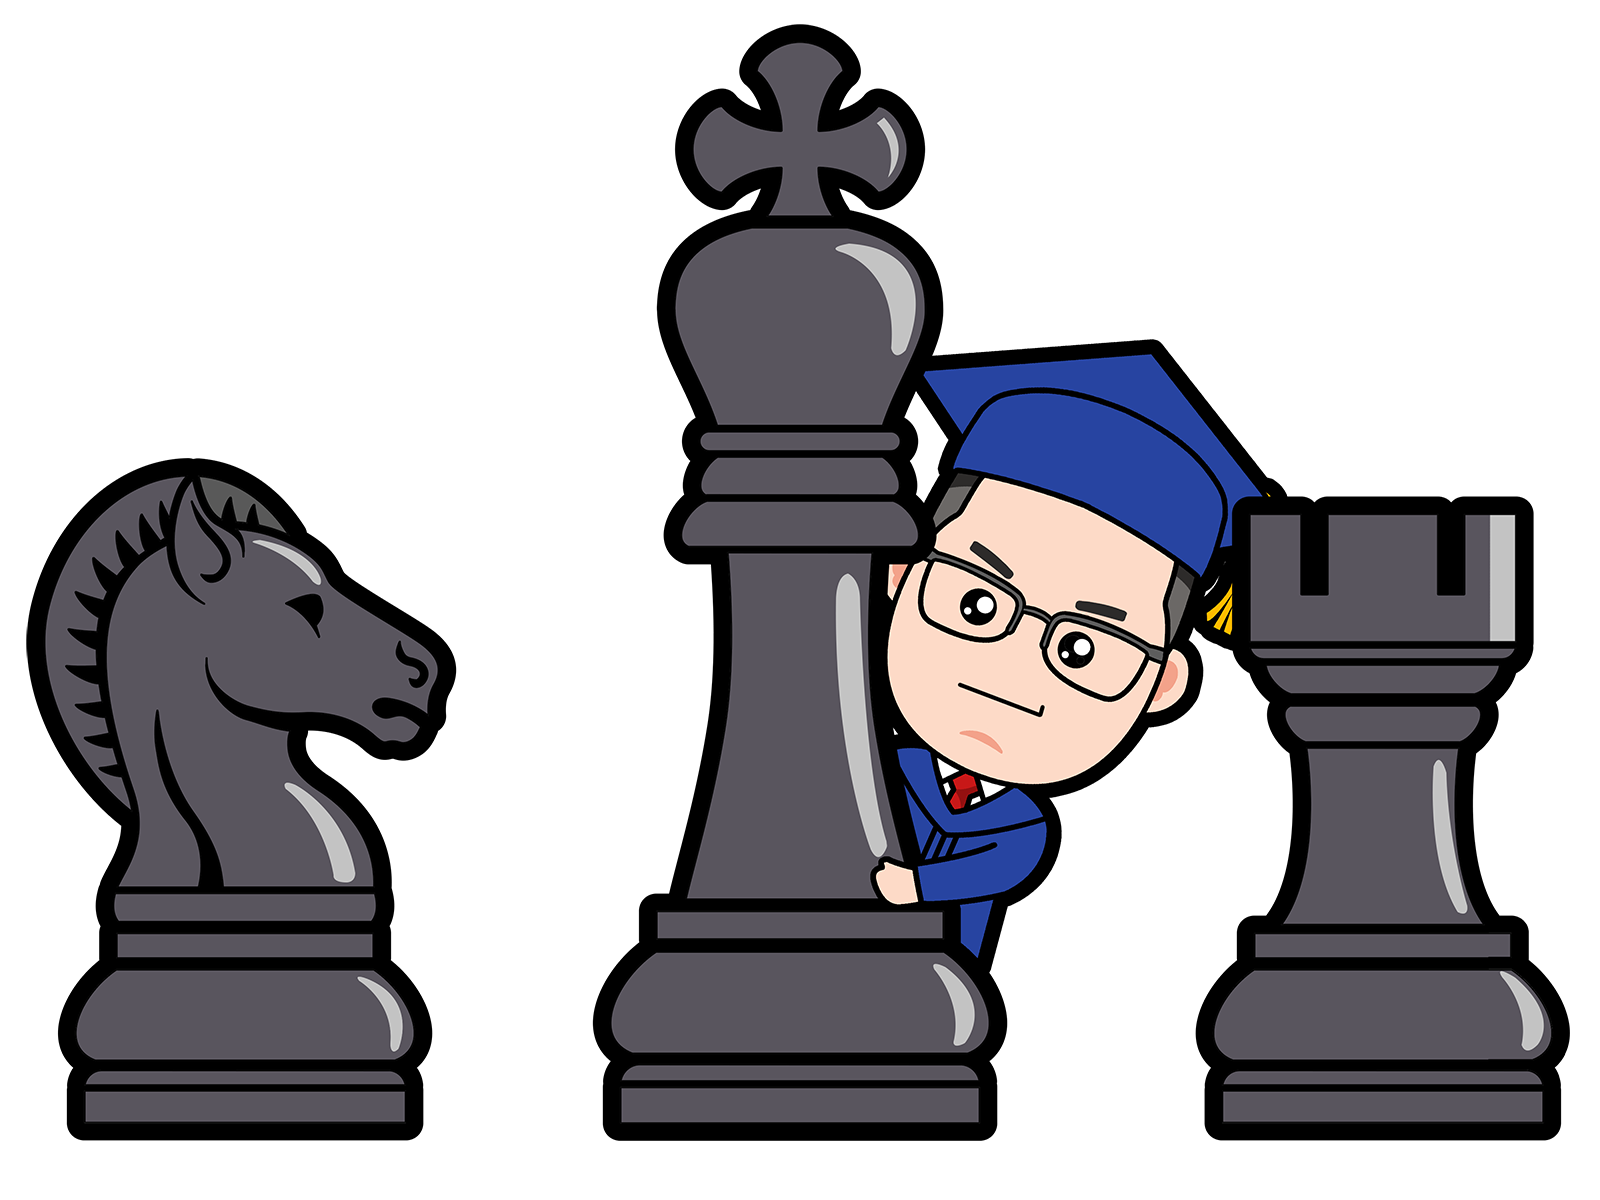 Chess clipart strategy. Using tactics in student